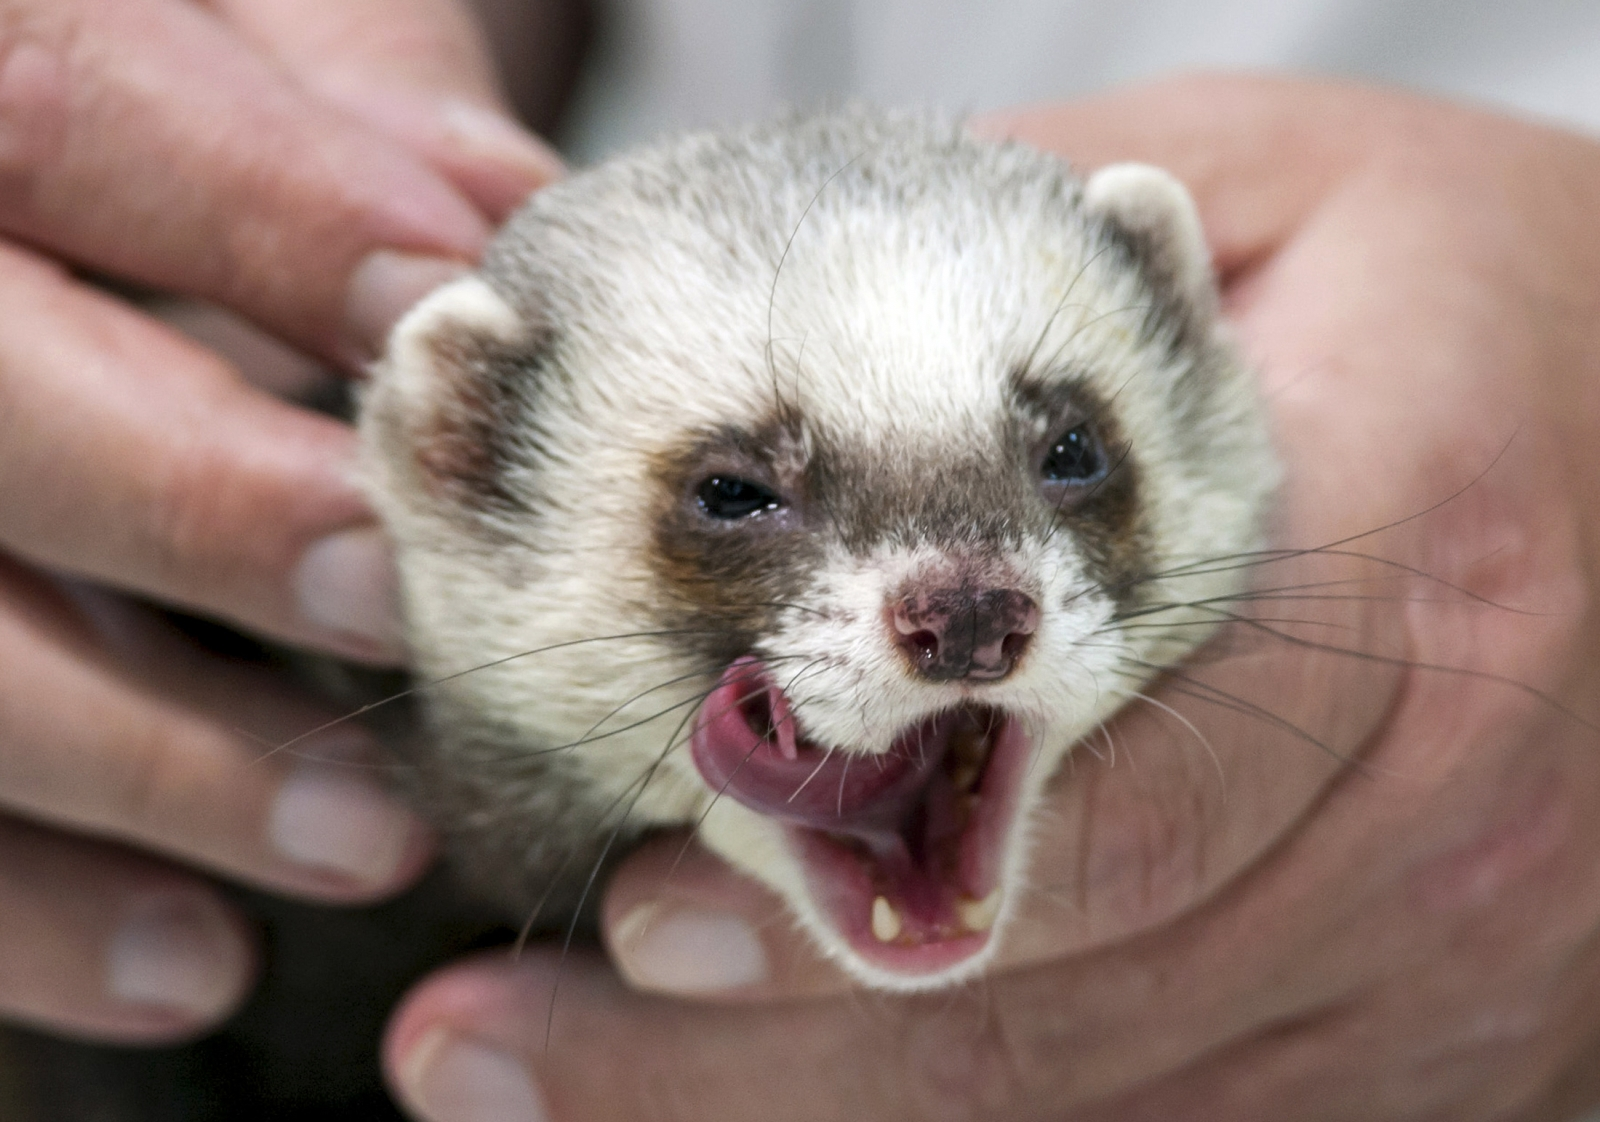 A baby in Pennsylania needed reconstructive surgery after being attacked by three ferrets. (Reuters)